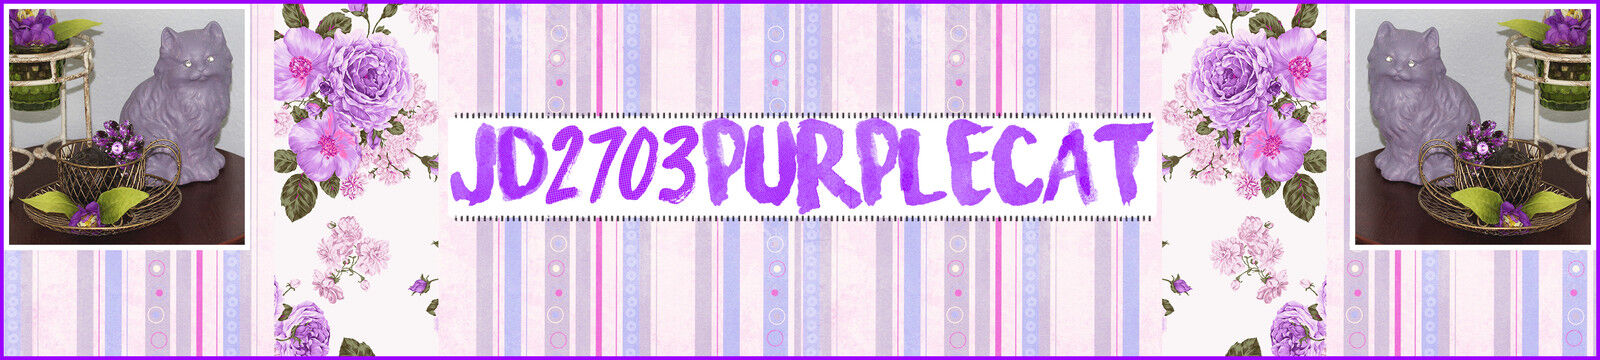 jd2703purplecat